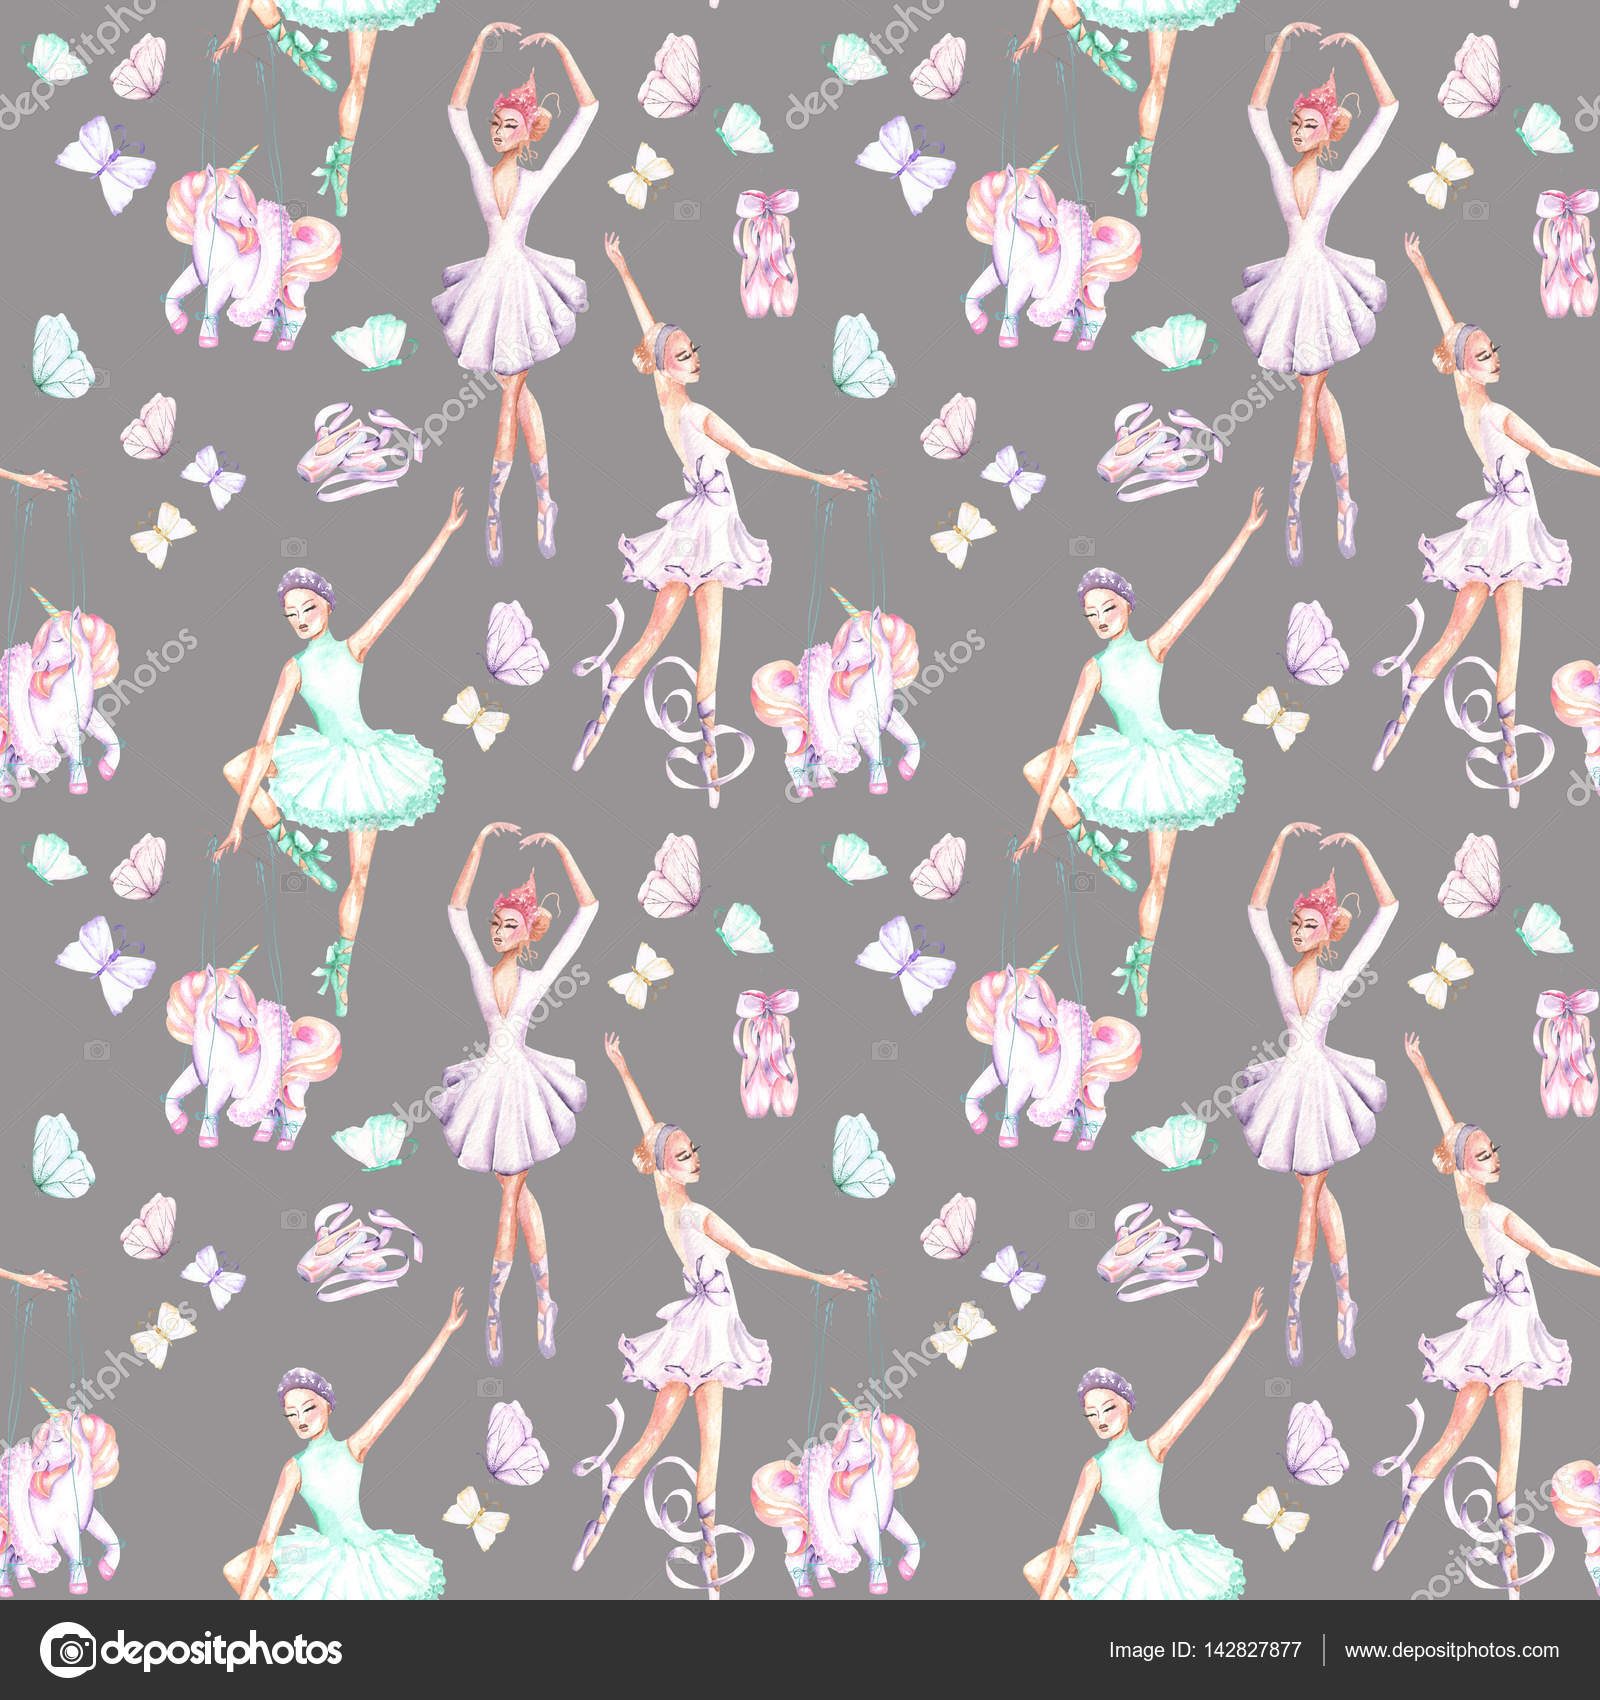 Seamless pattern of ballet dancers royalty free stock photography - Seamless Pattern With Watercolor Ballet Dancers Puppet Unicorns Butterflies And Pointe Shoes Stock